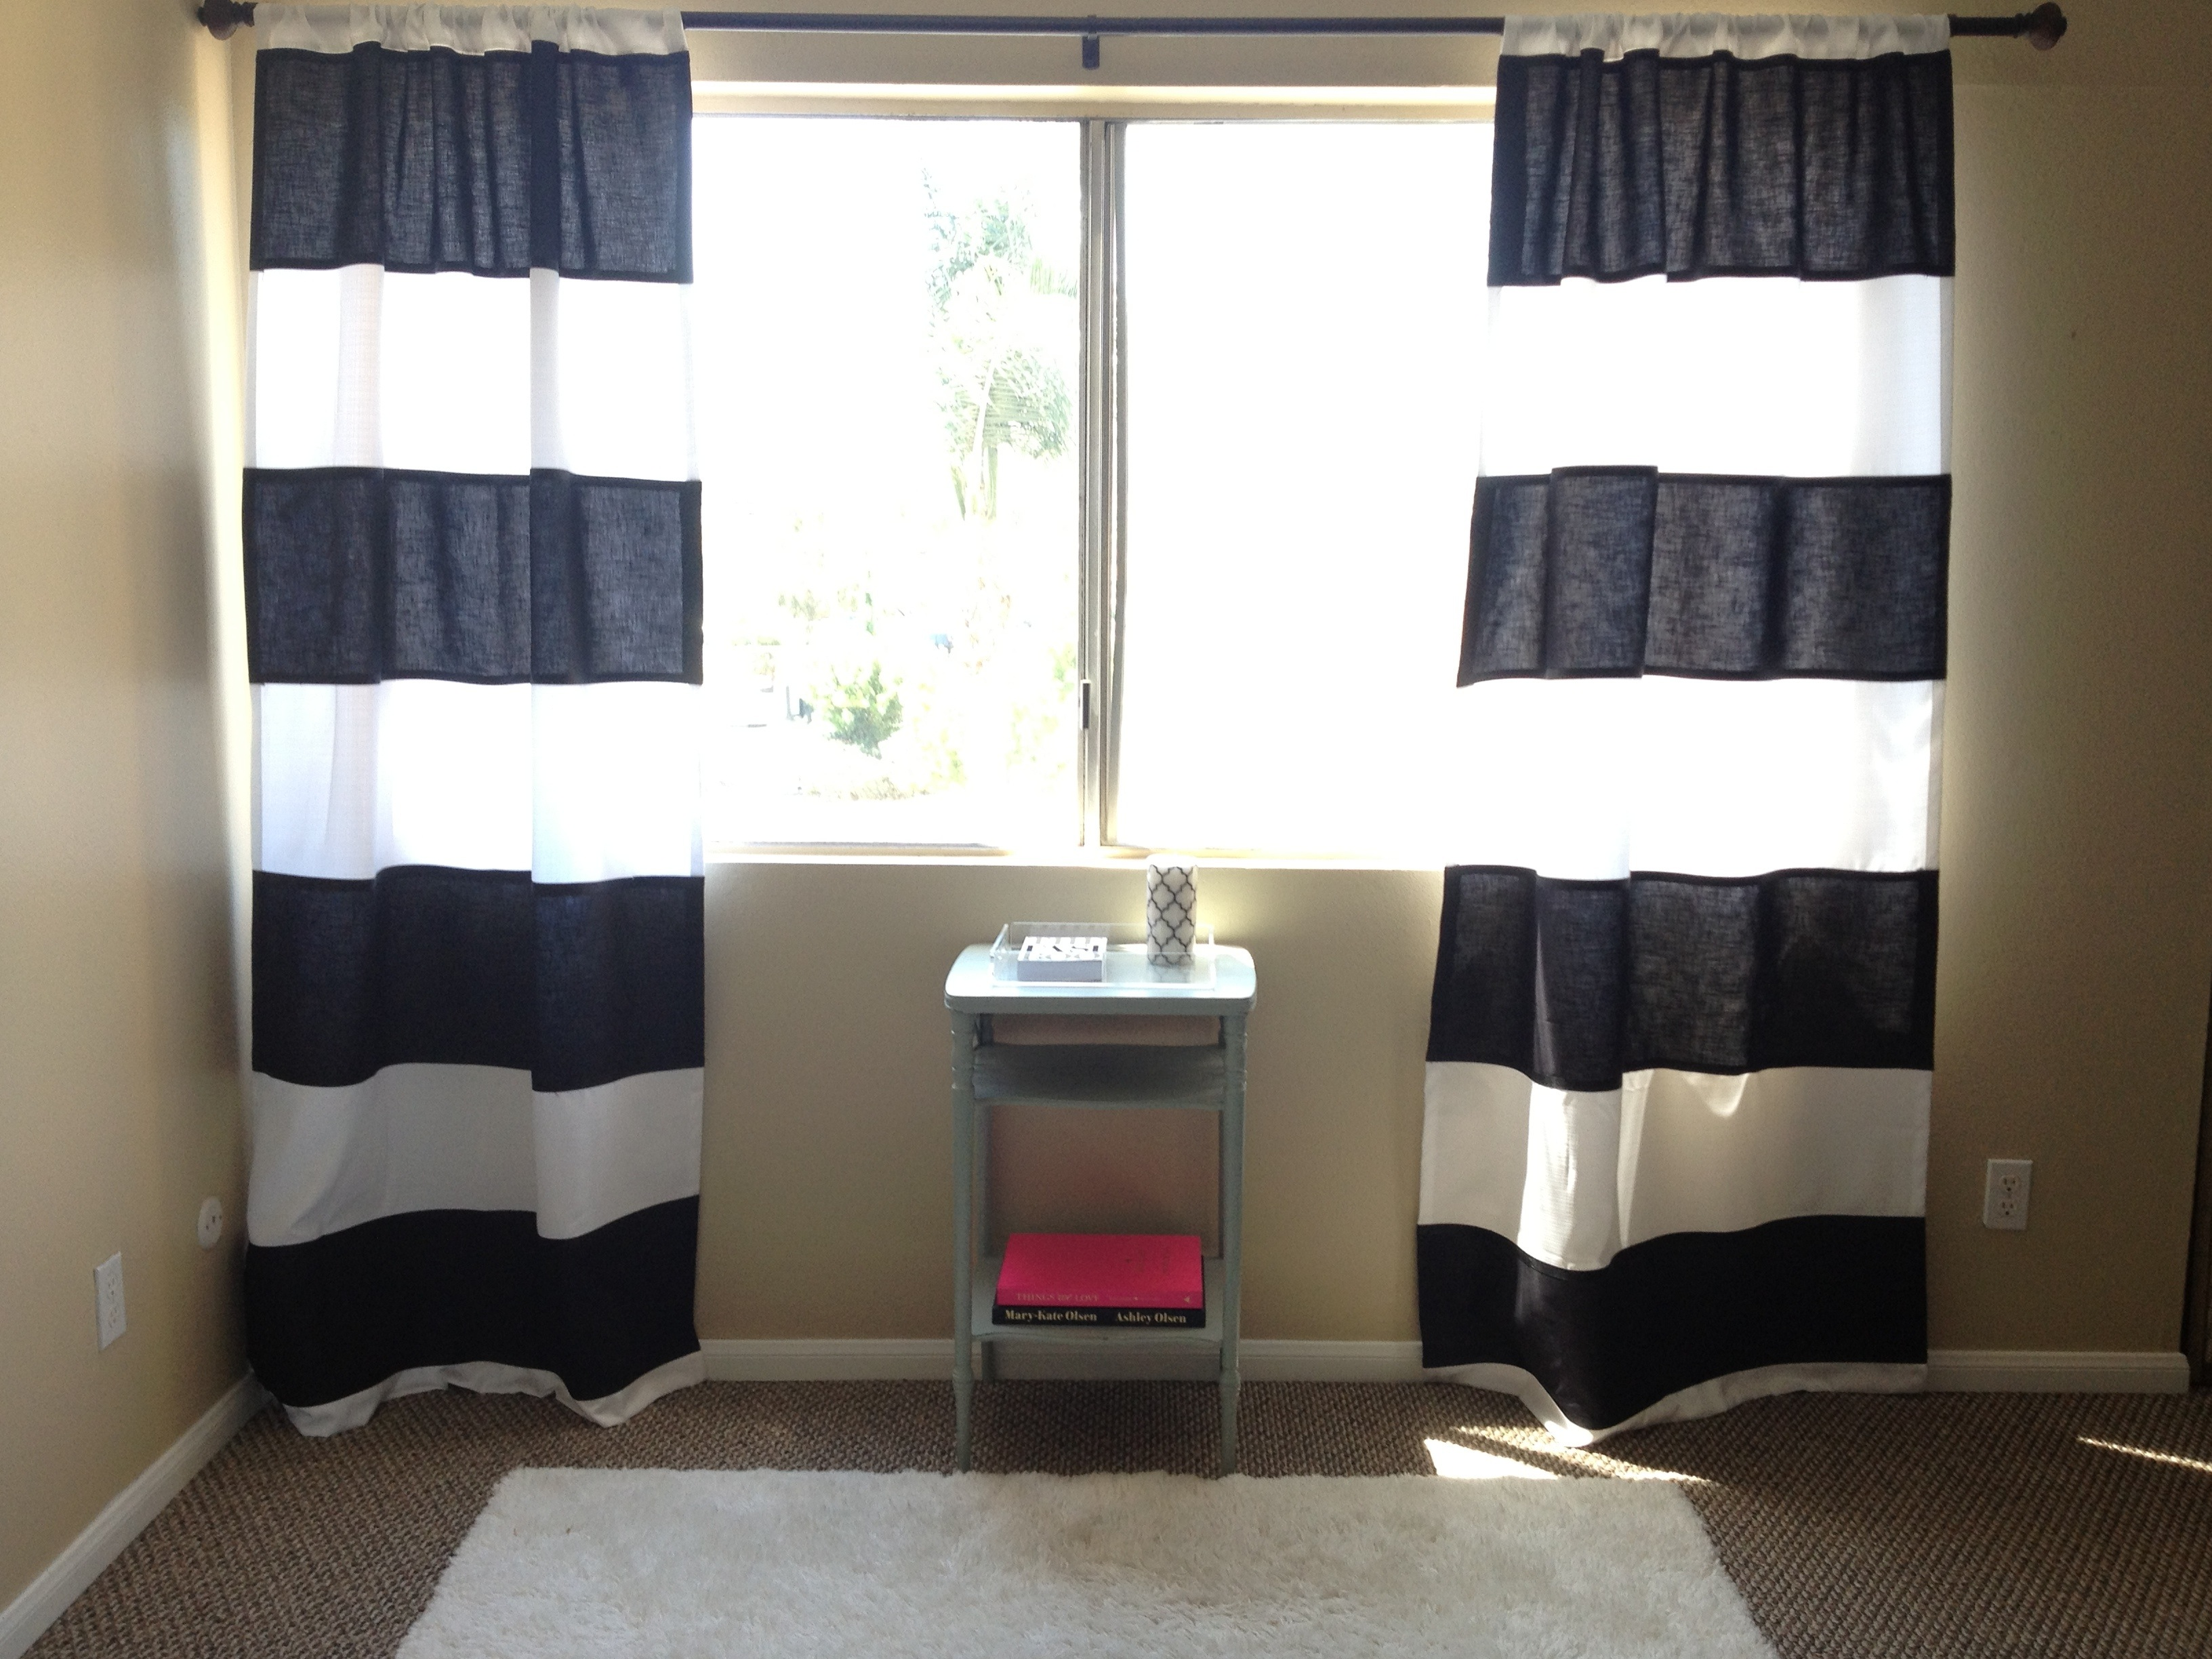 sunbrella Striped Curtains Horizontal in white and black with mini table before window